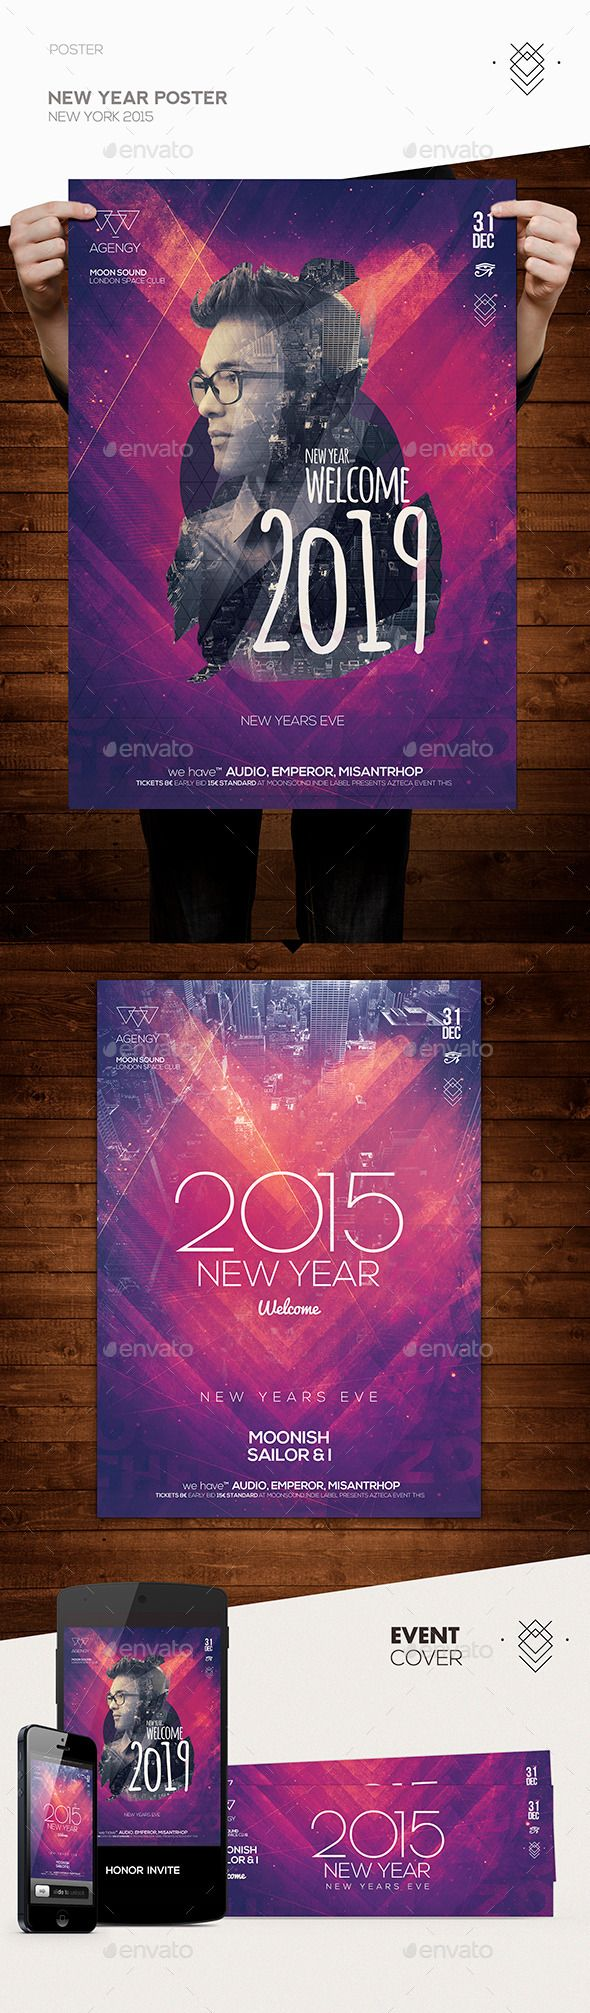 100 best New Year Party Flyer Templates images – New Year Poster Template